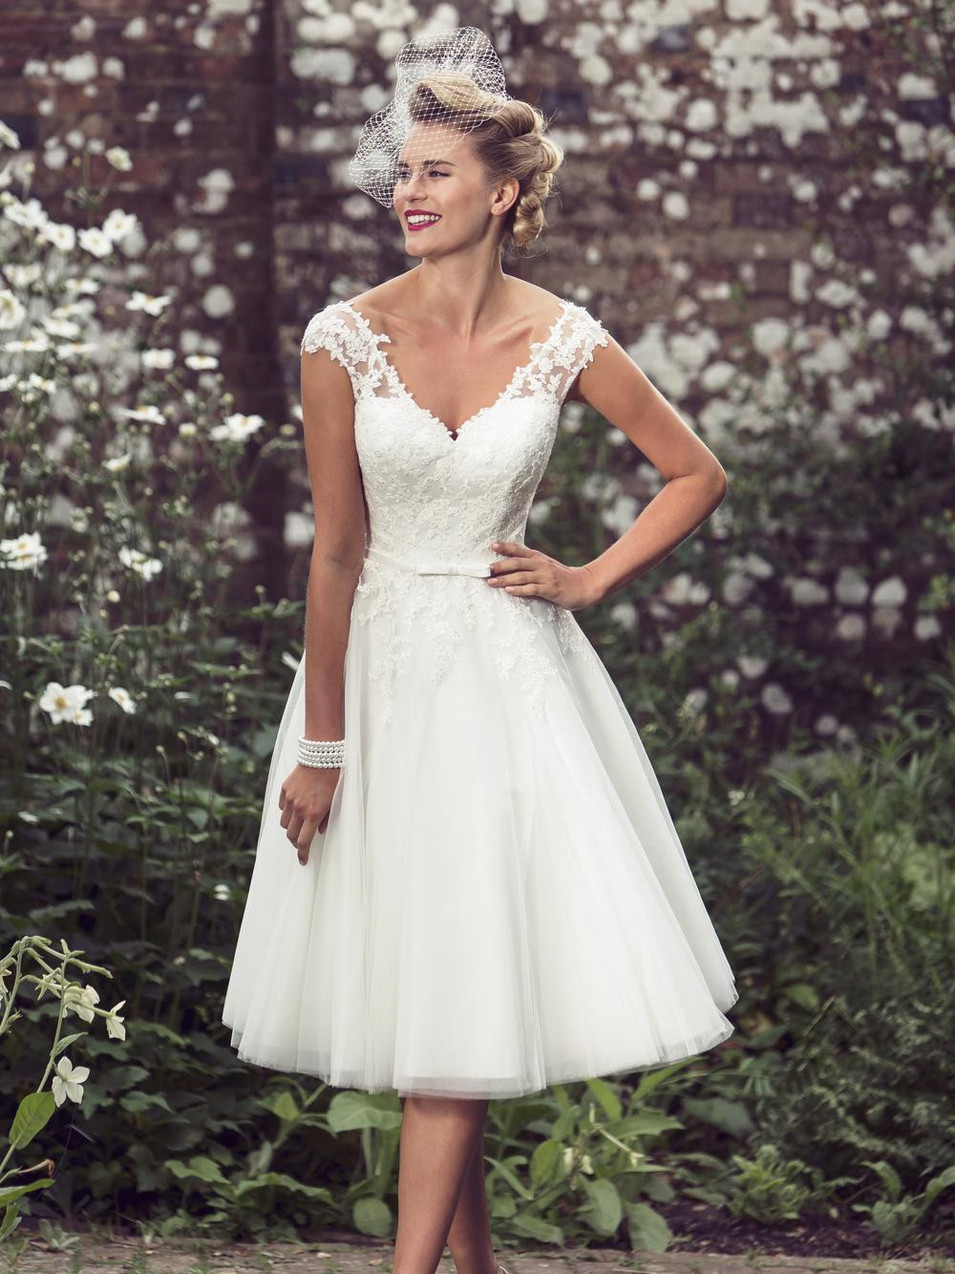 Lottie by Brighton Belle - £799